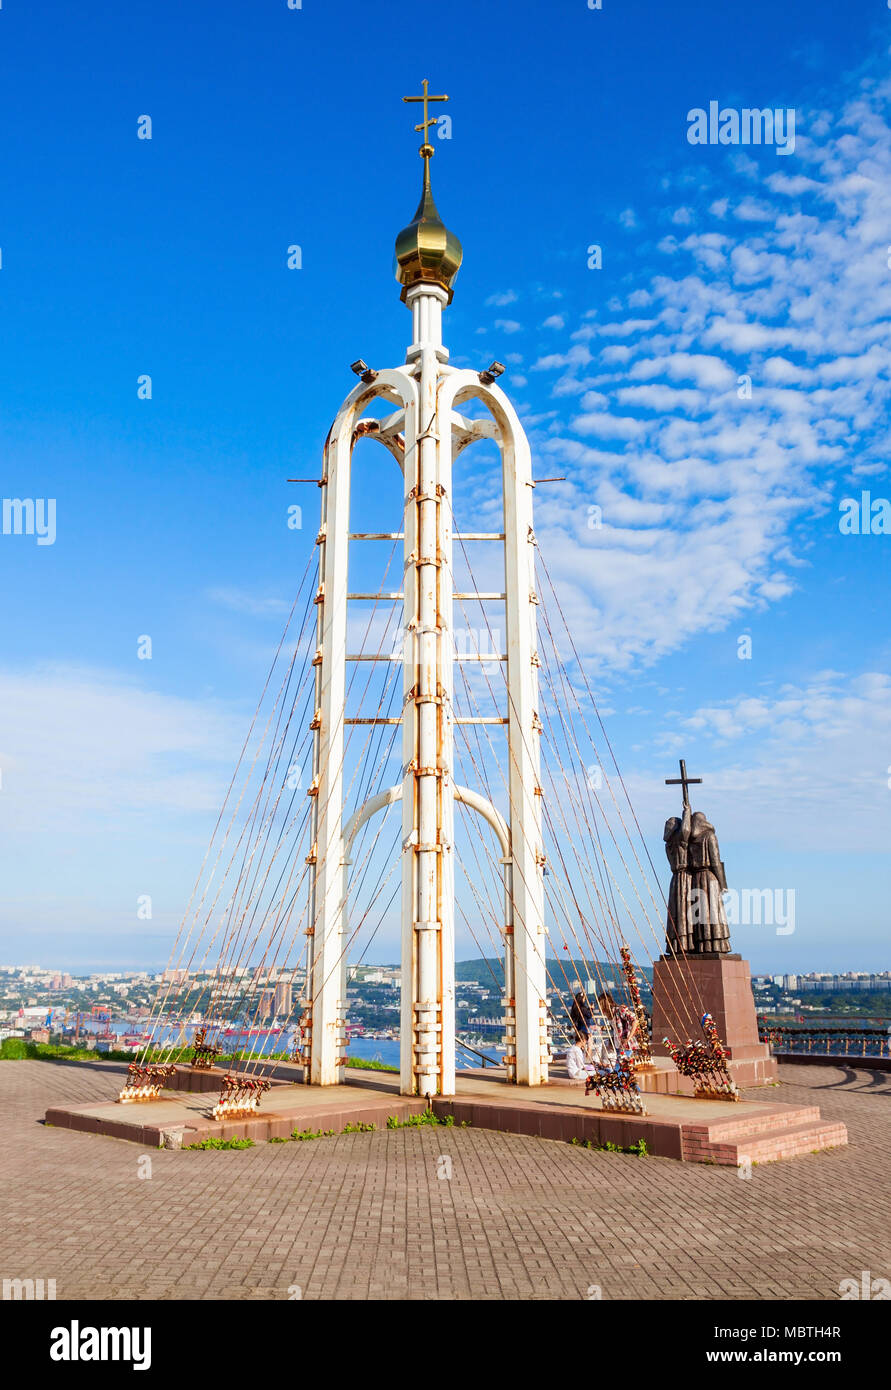 Chapel and Monument of Cyril and Methodius, Educators and creators of the Slavic alphabet Eagle Nest Mount in Vladivostok, Russia - Stock Image